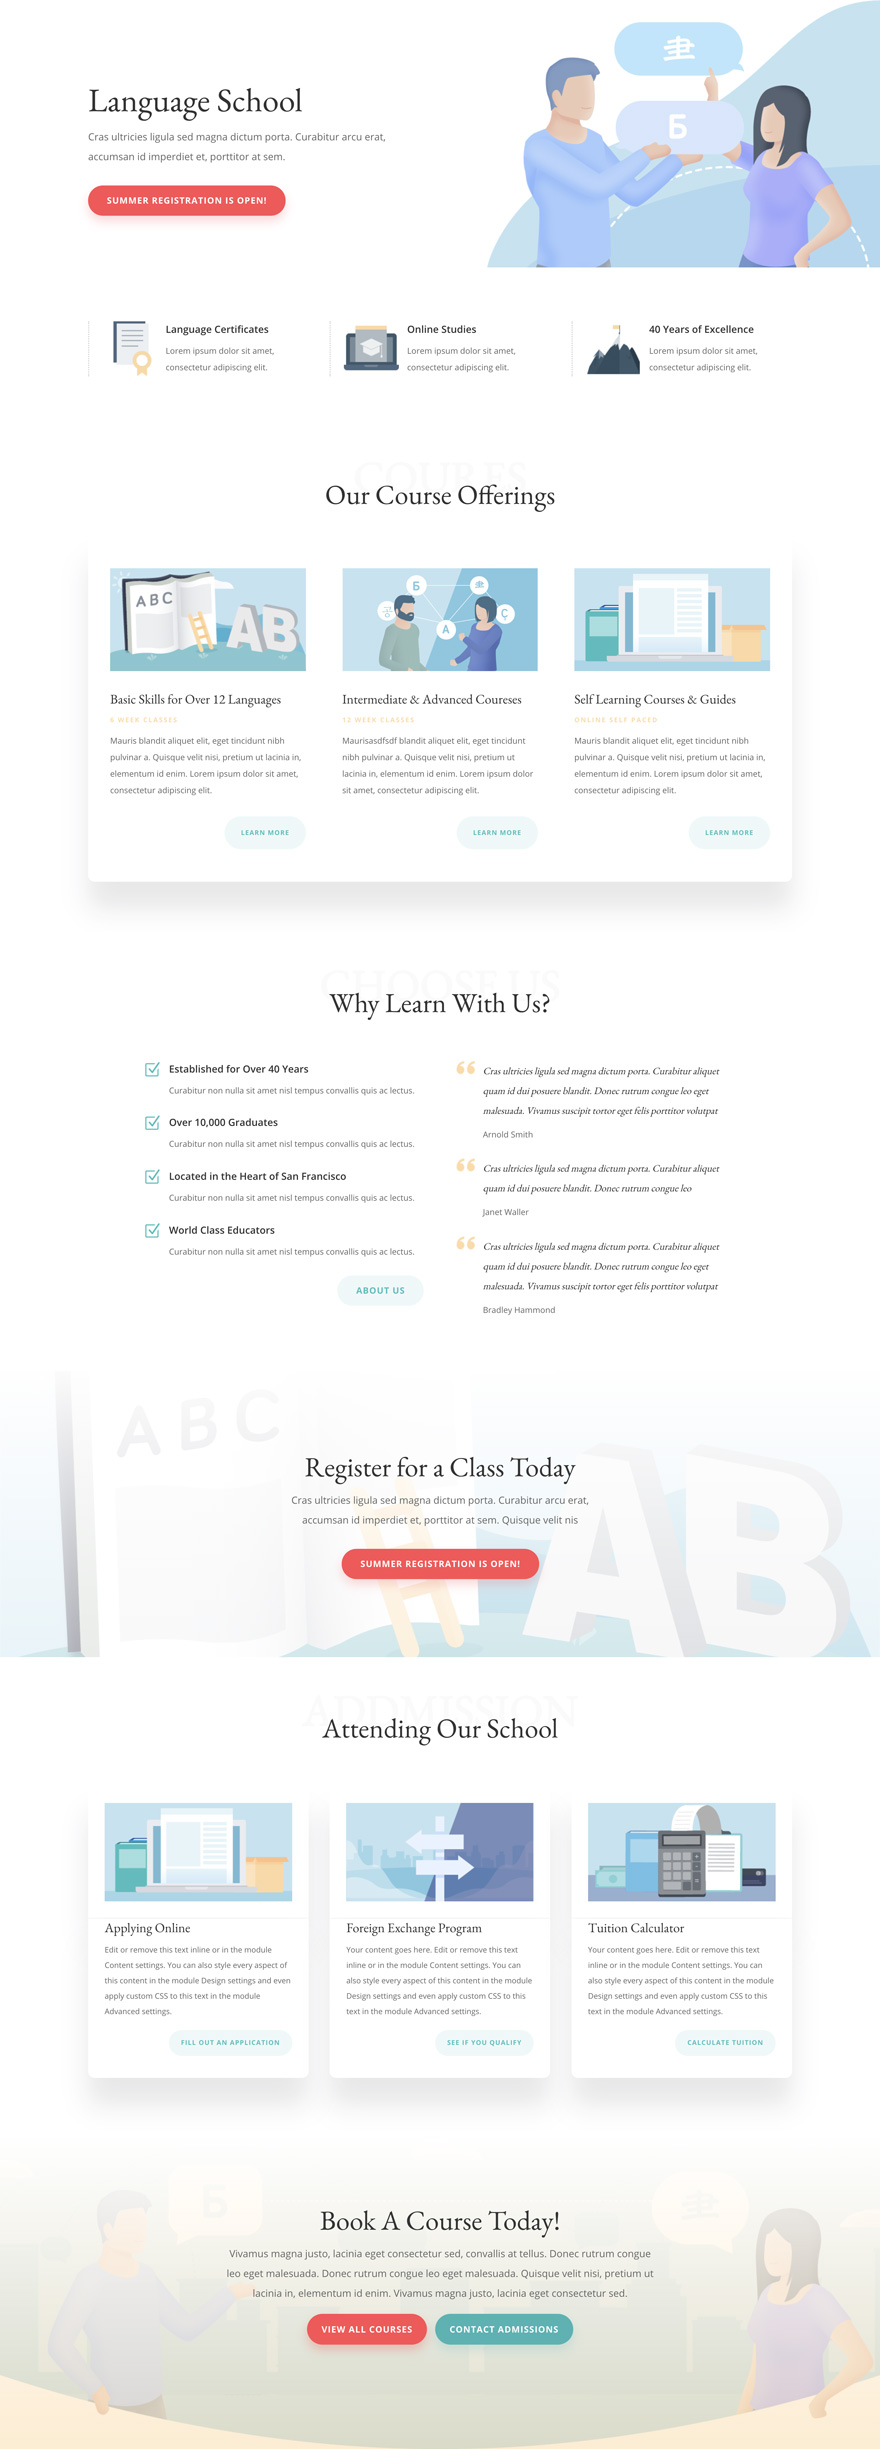 Language School website design